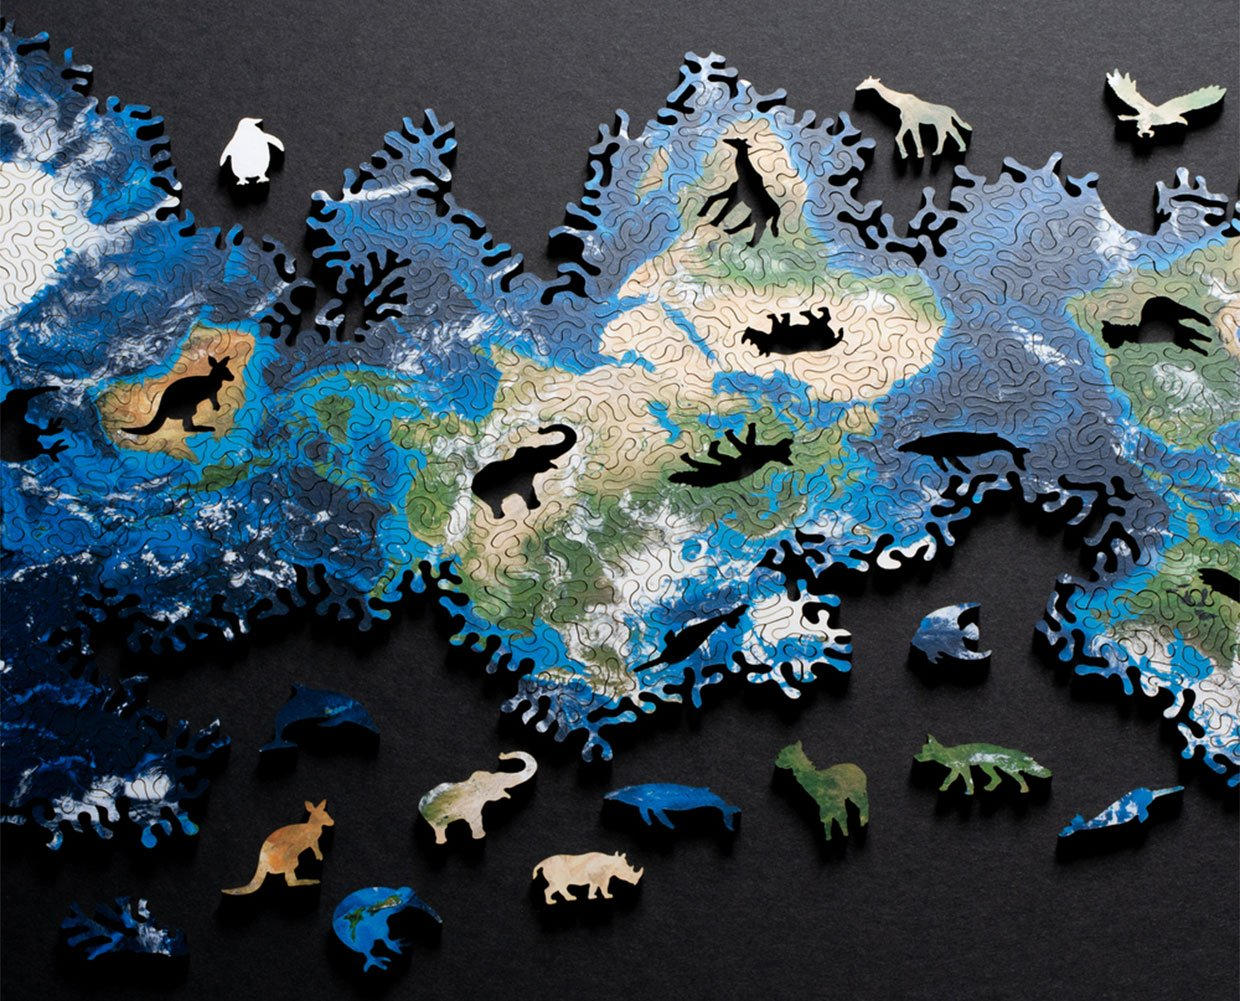 Earth + Moon Infinity Puzzles